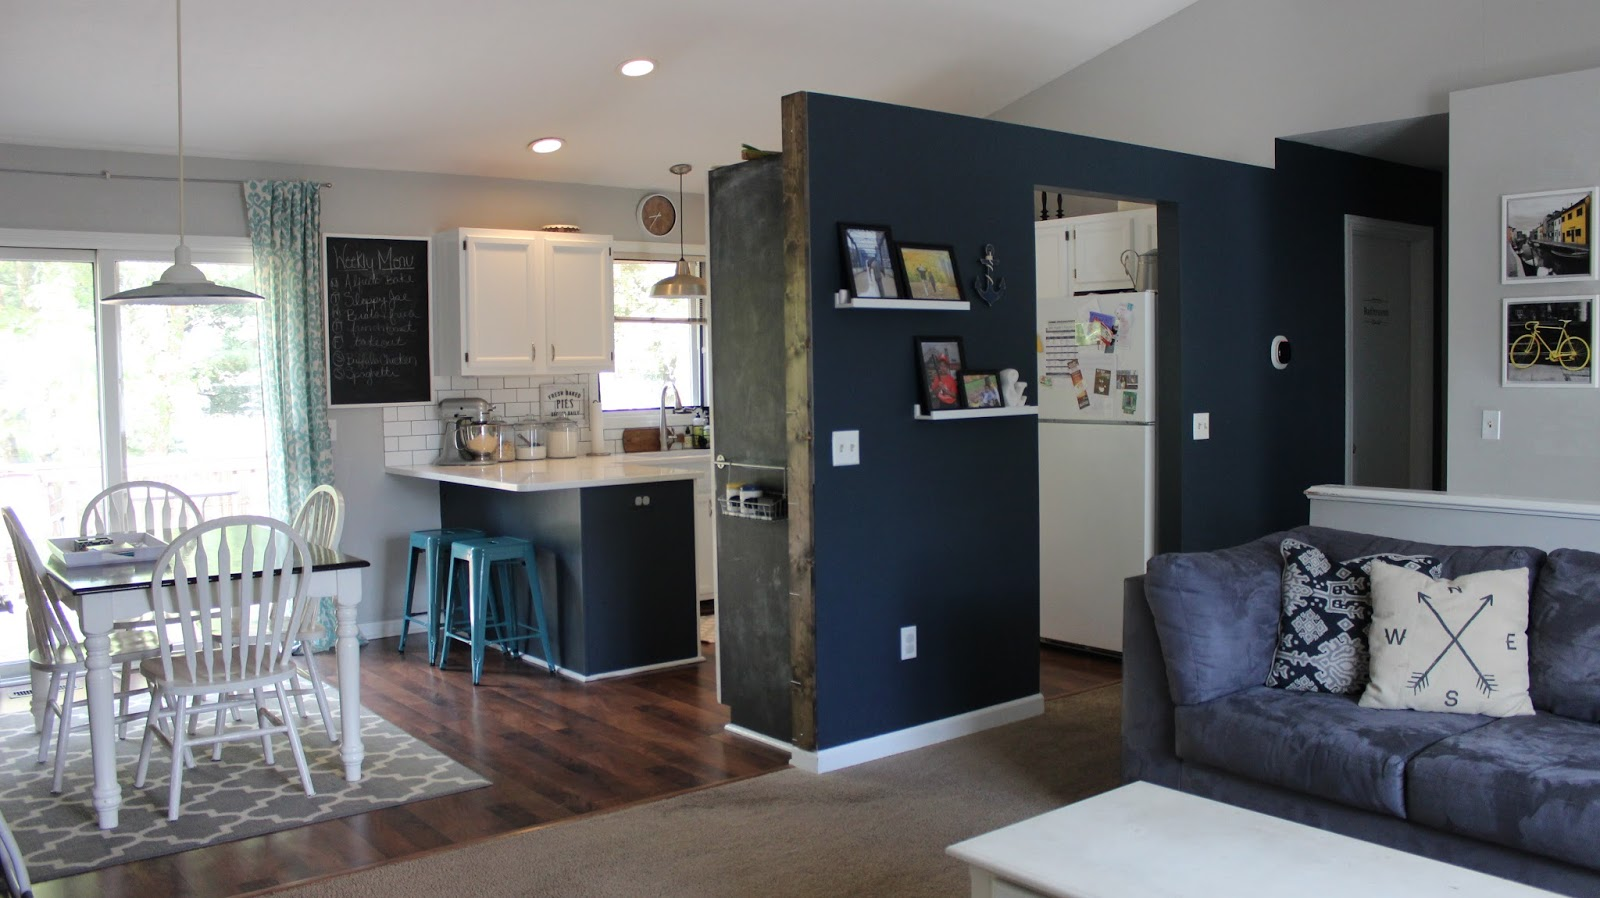 (That Tiny Cabinet Where The Chalkboard Is, Thatu0027s The Pantry!)